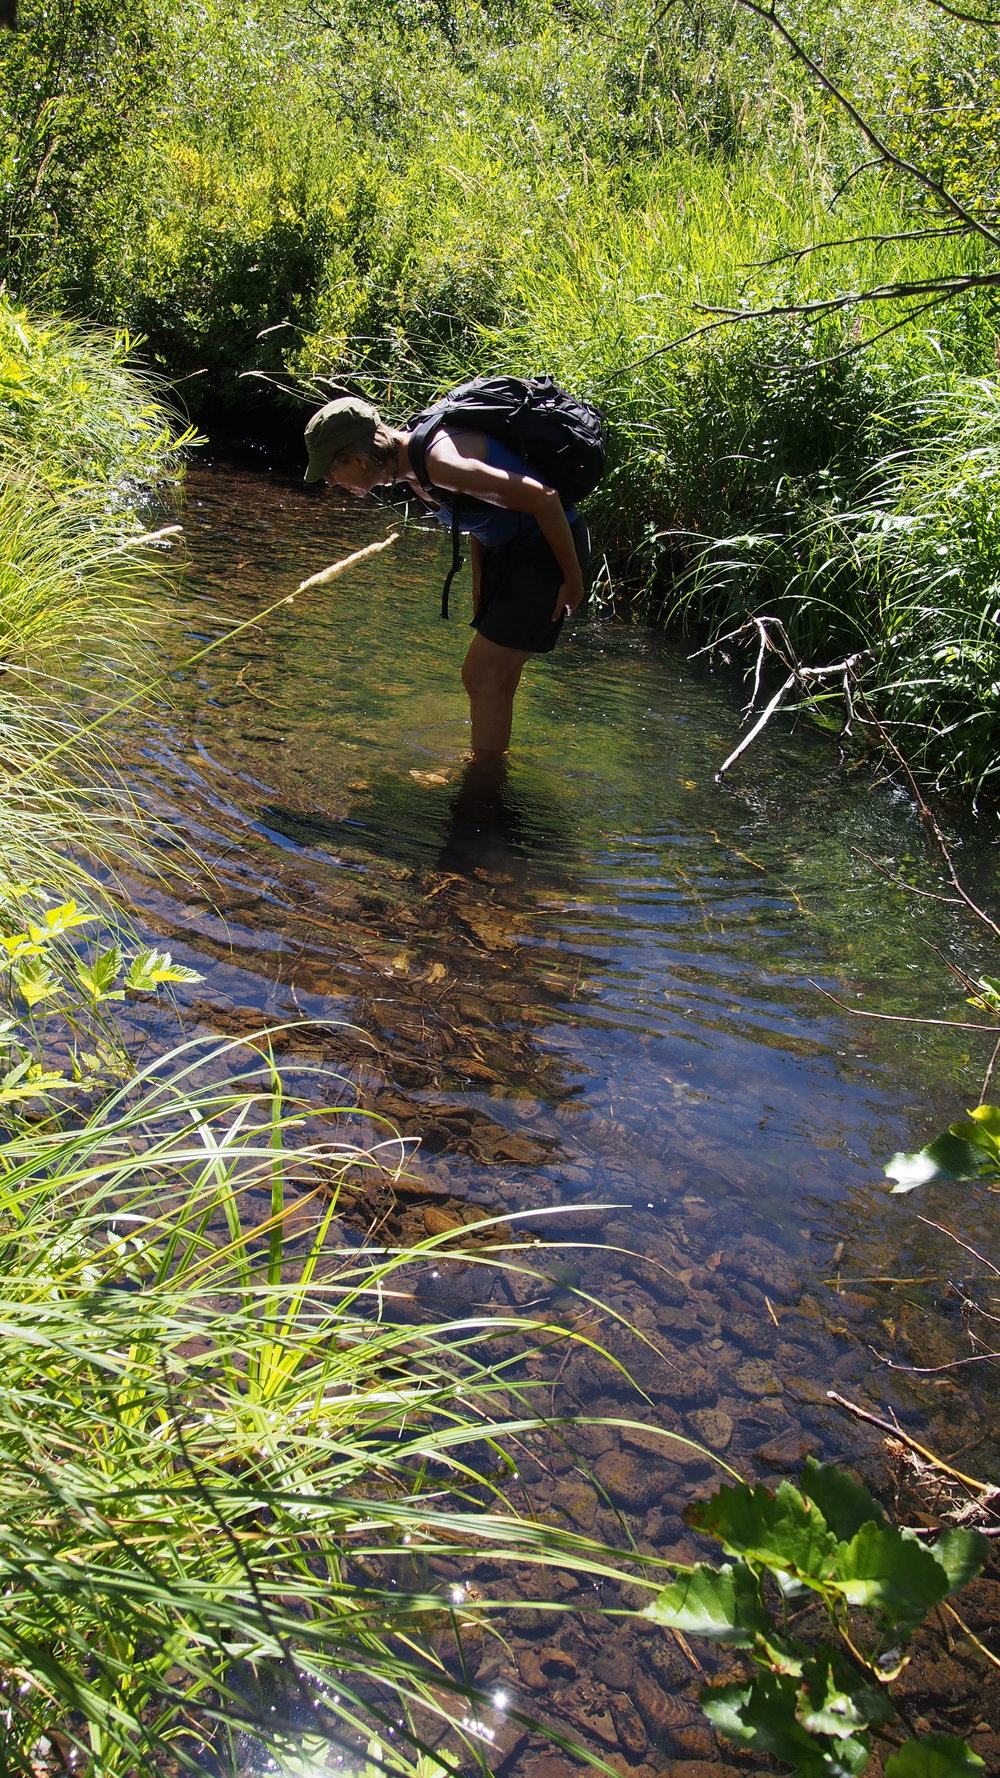 Exploring Jenny Creek while learning about beavers and watersheds.